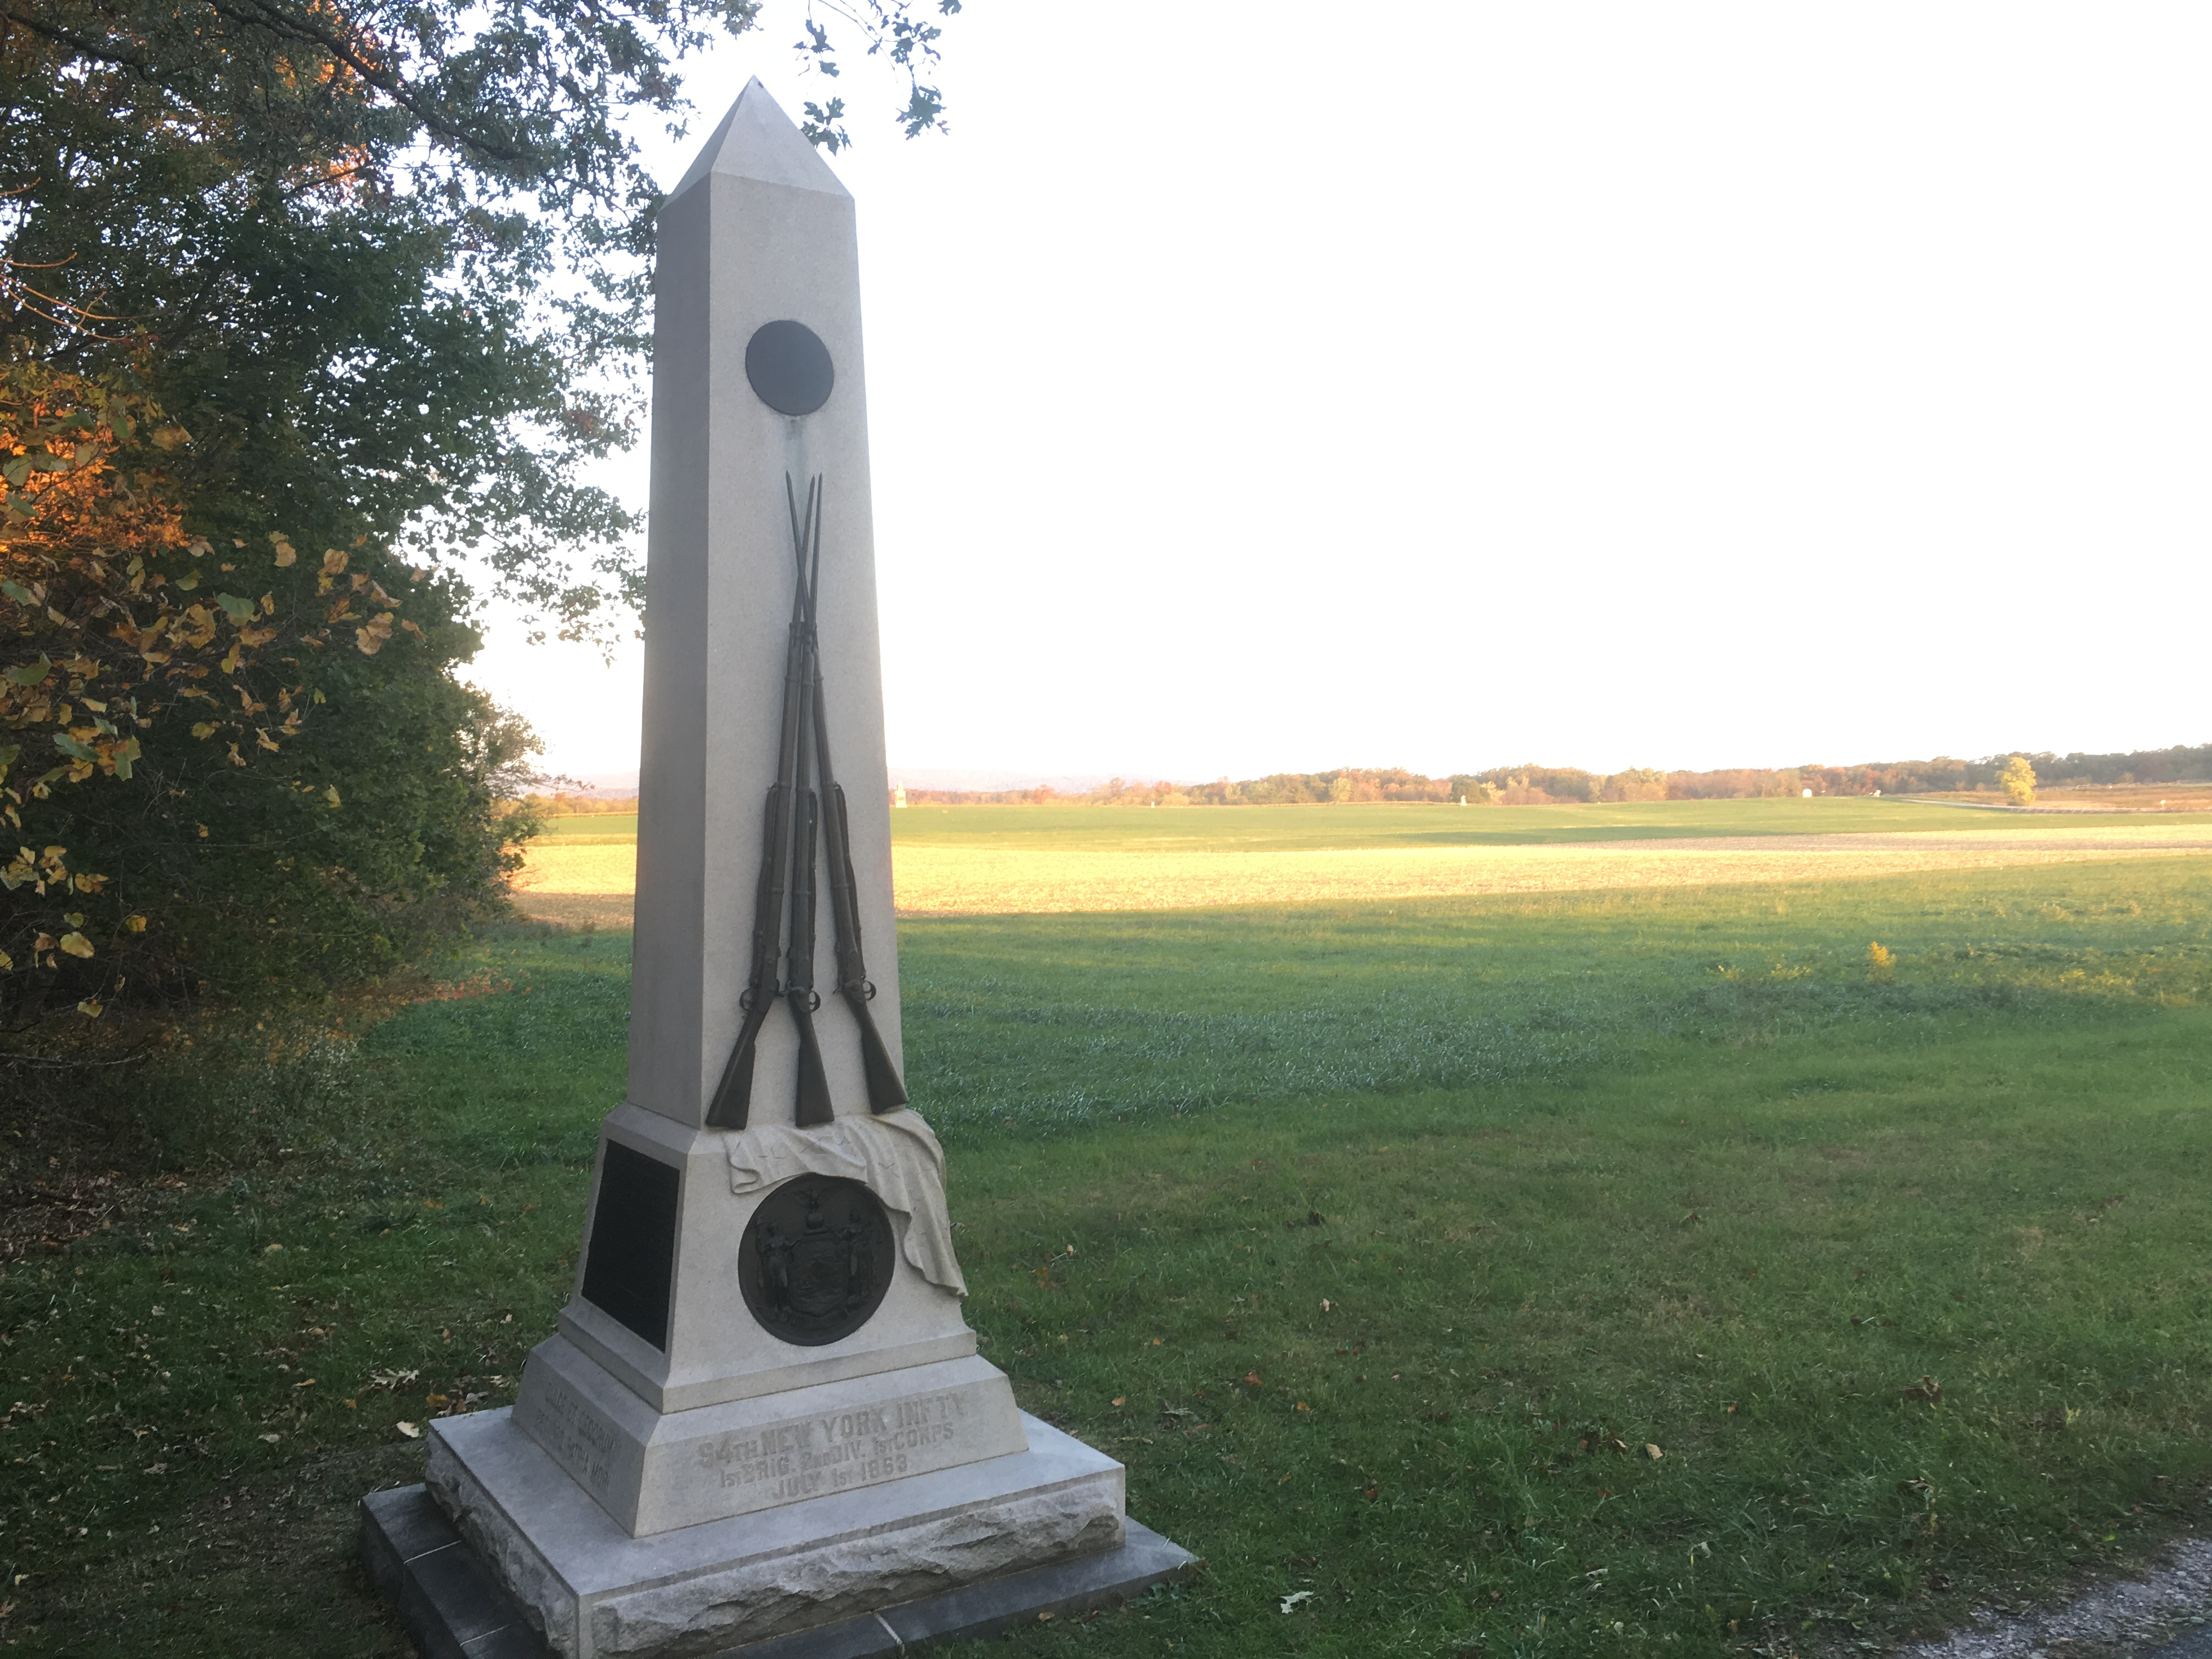 The 94th New York Infantry Memorial, Oak Ridge, Gettysburg (Damian Shiels)